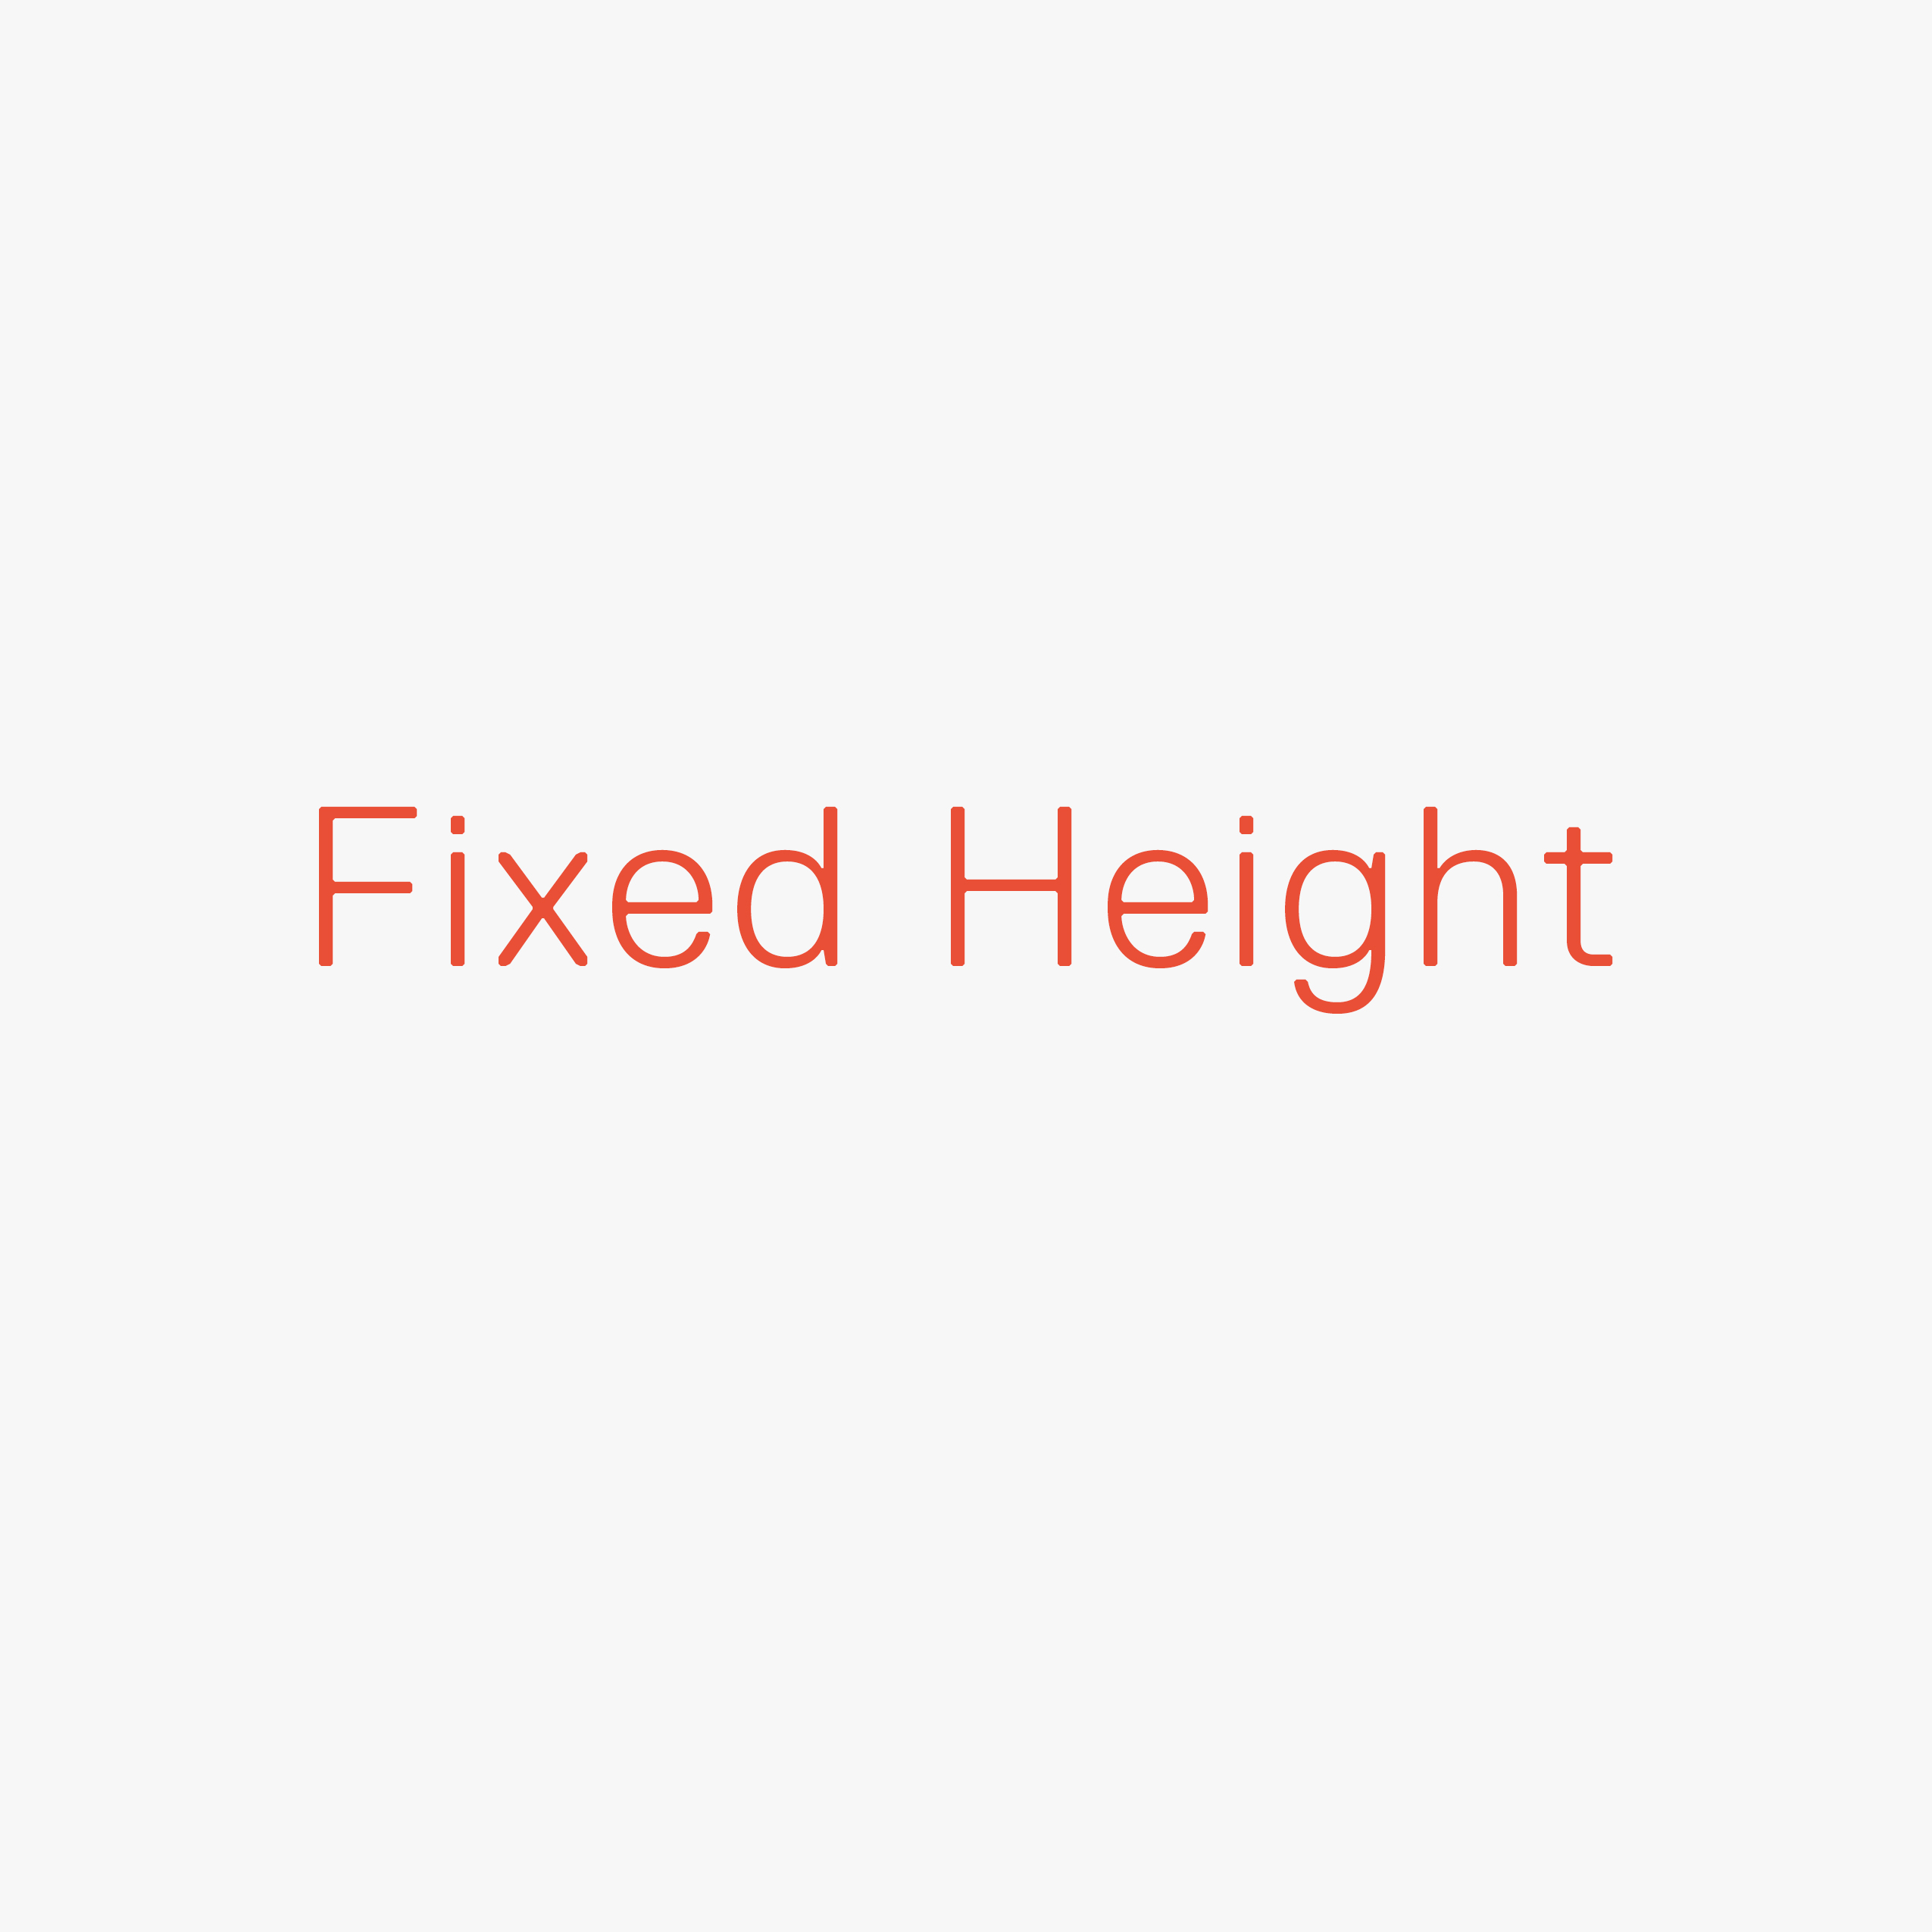 Fixed Height Swatch